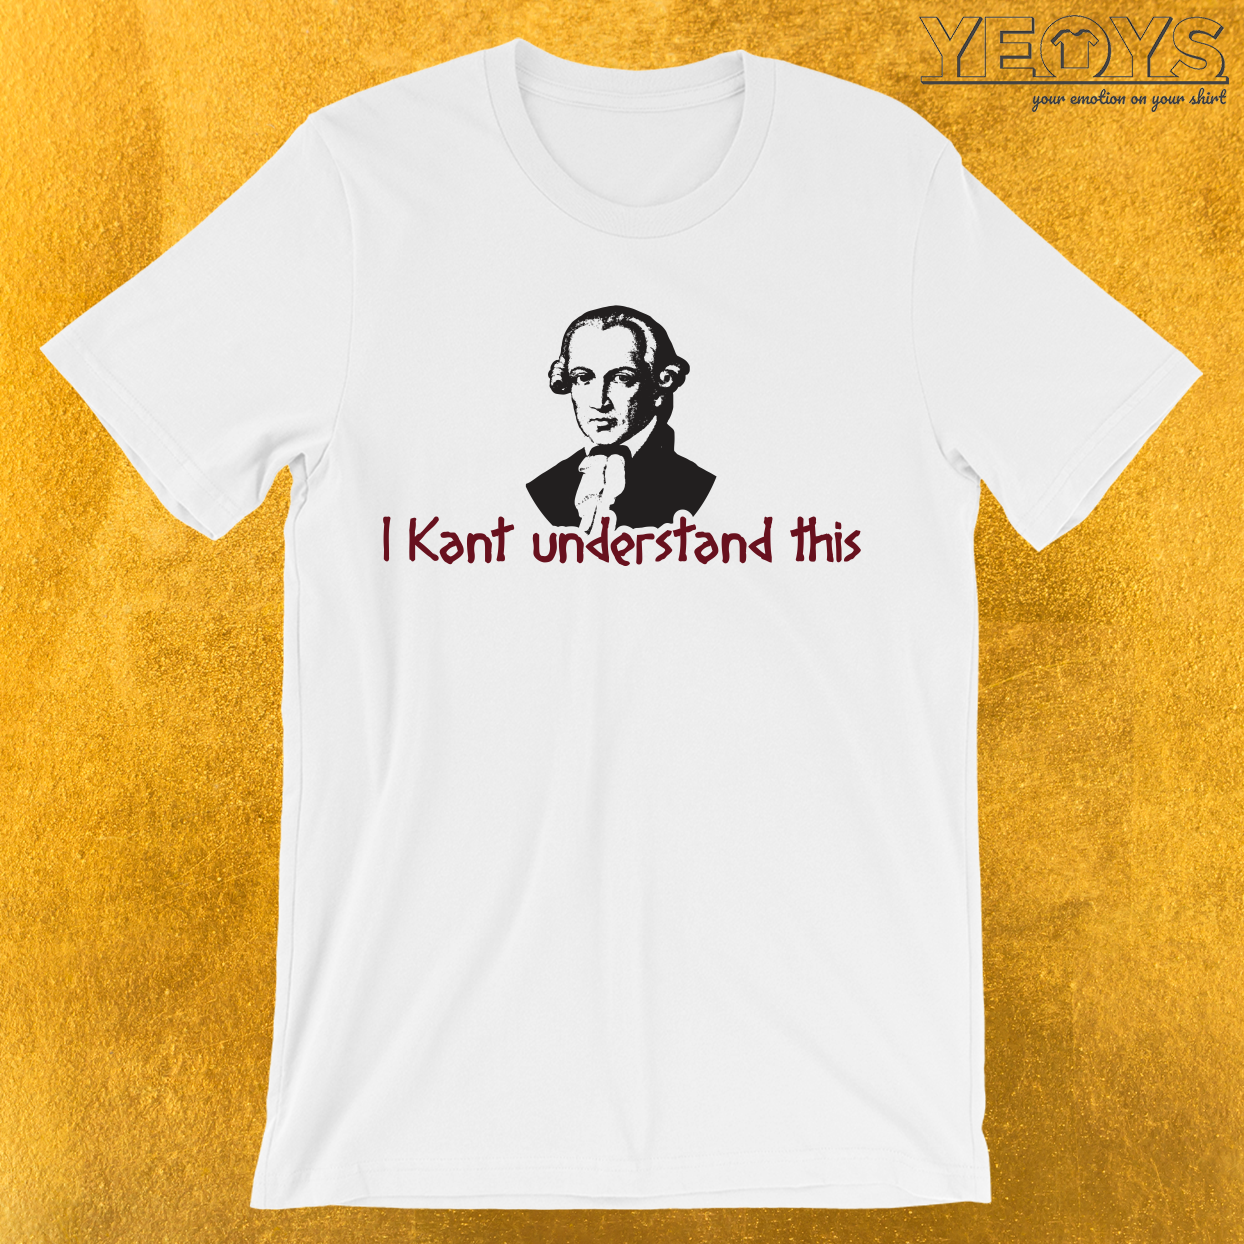 I Kant Understand This T-Shirt